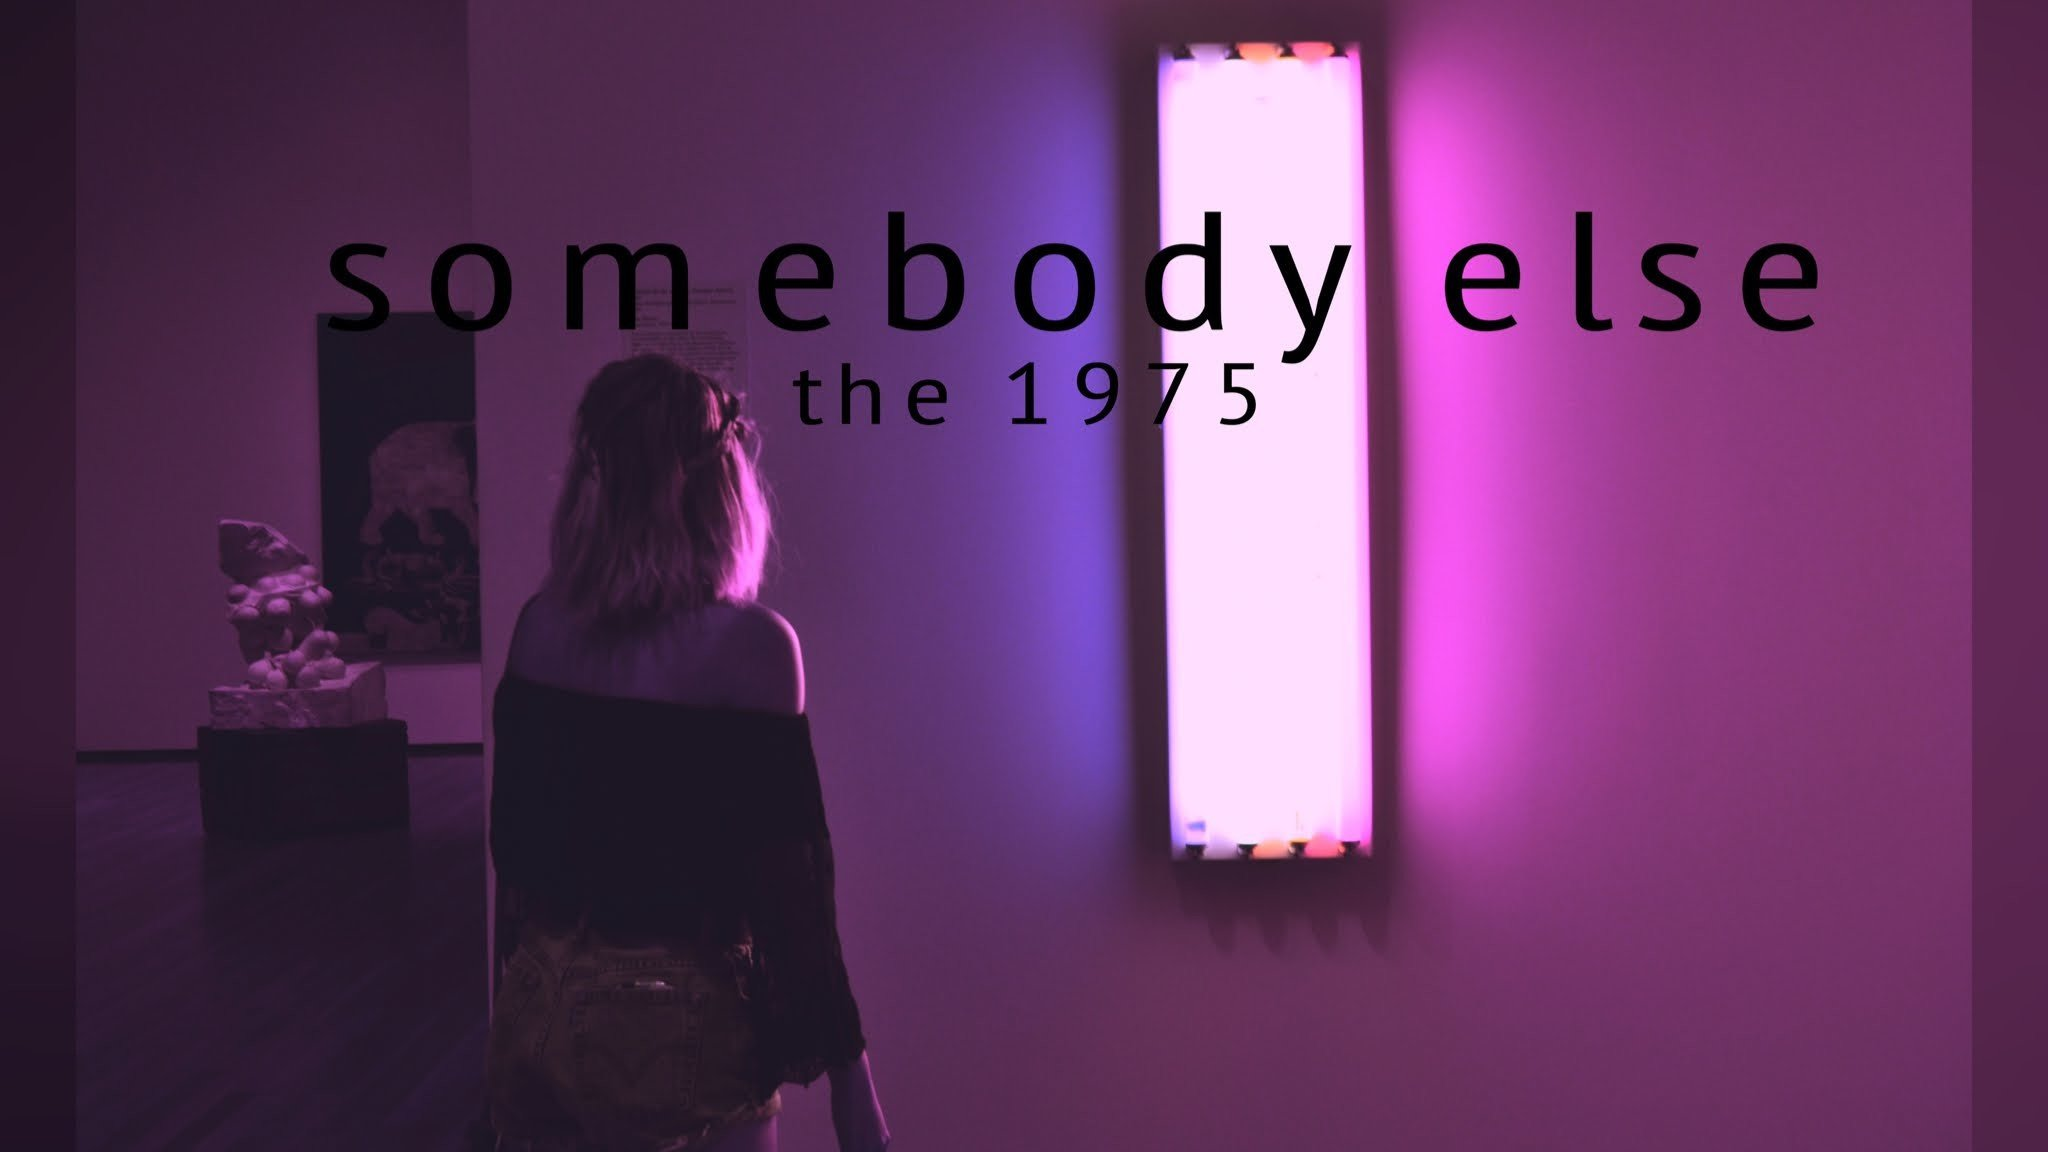 The 1975 Wallpapers 82 images 2048x1152